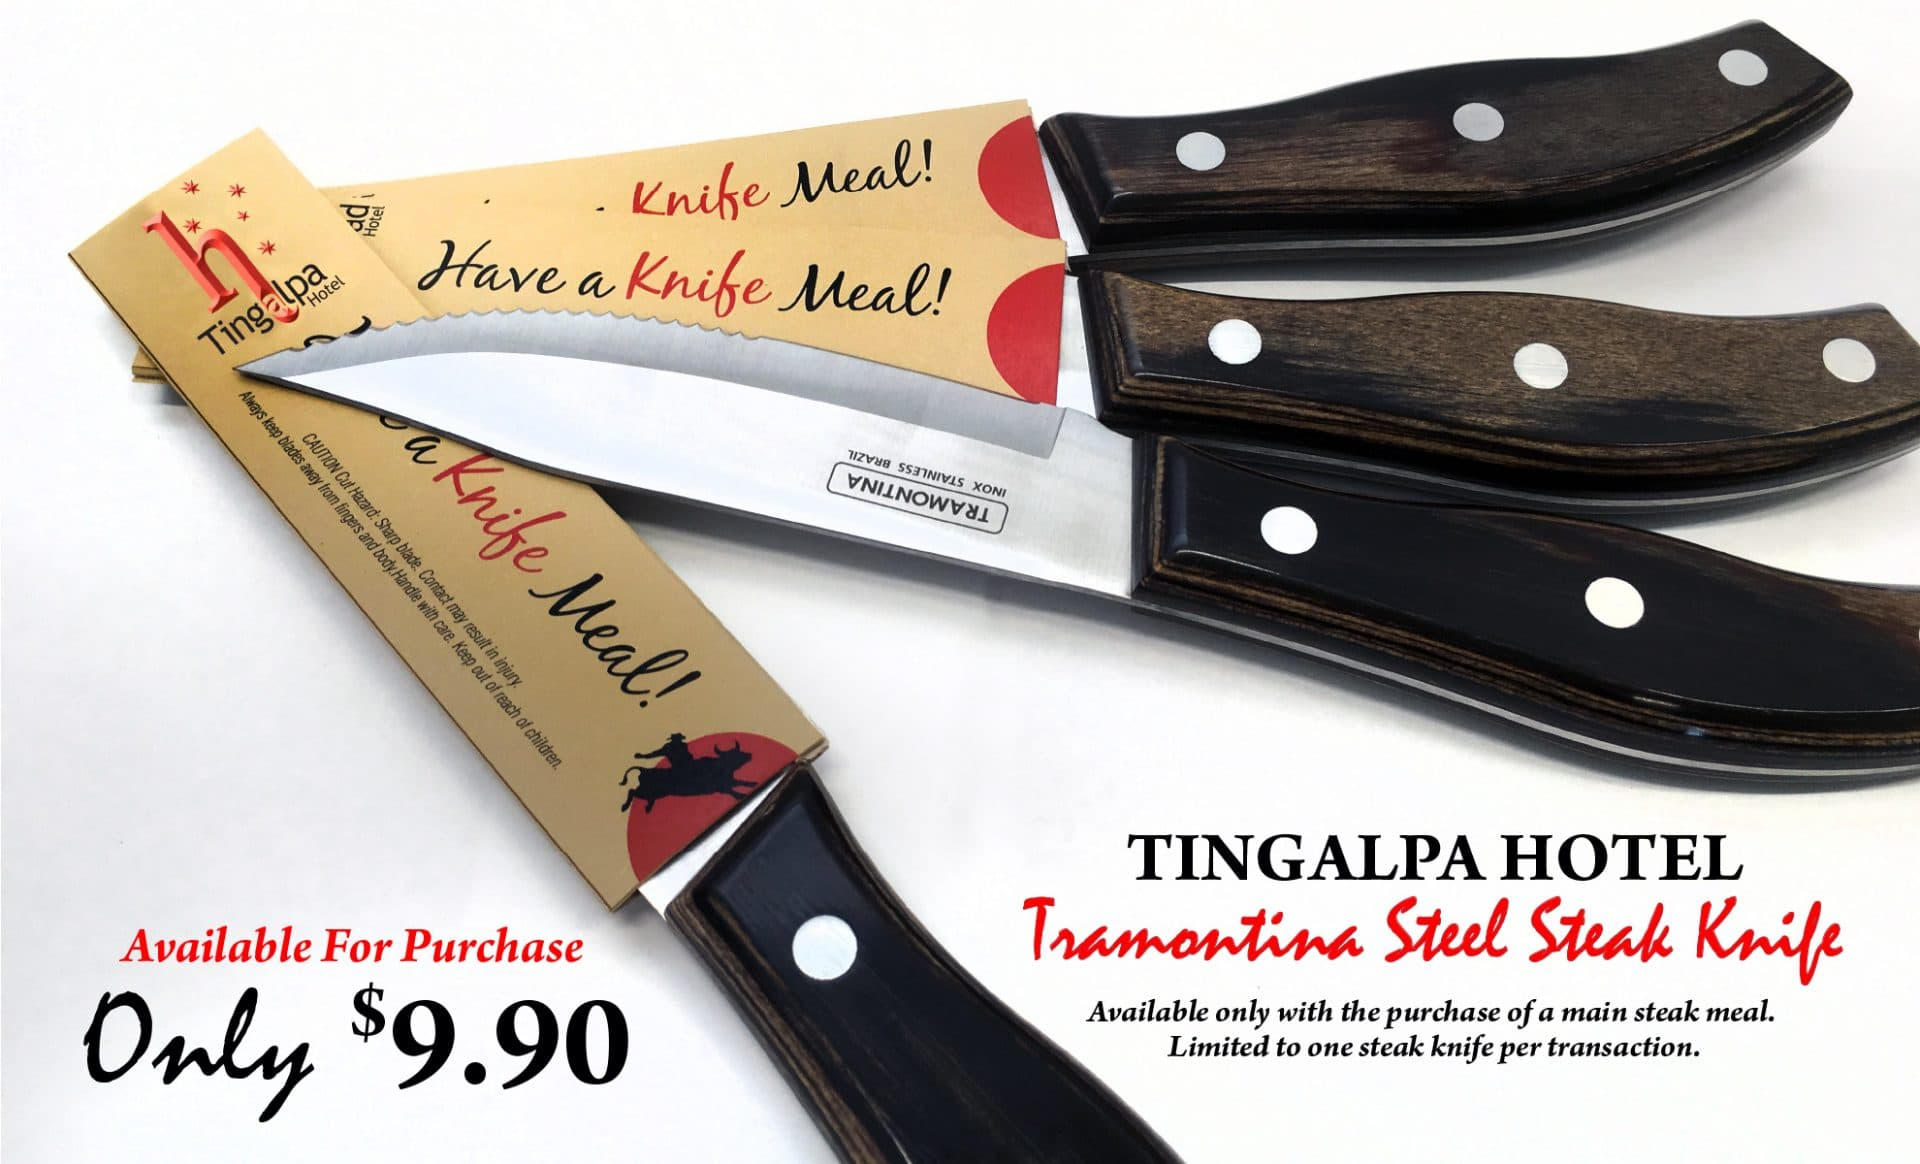 Tramontina Steak Knife Tingalpa Hotel